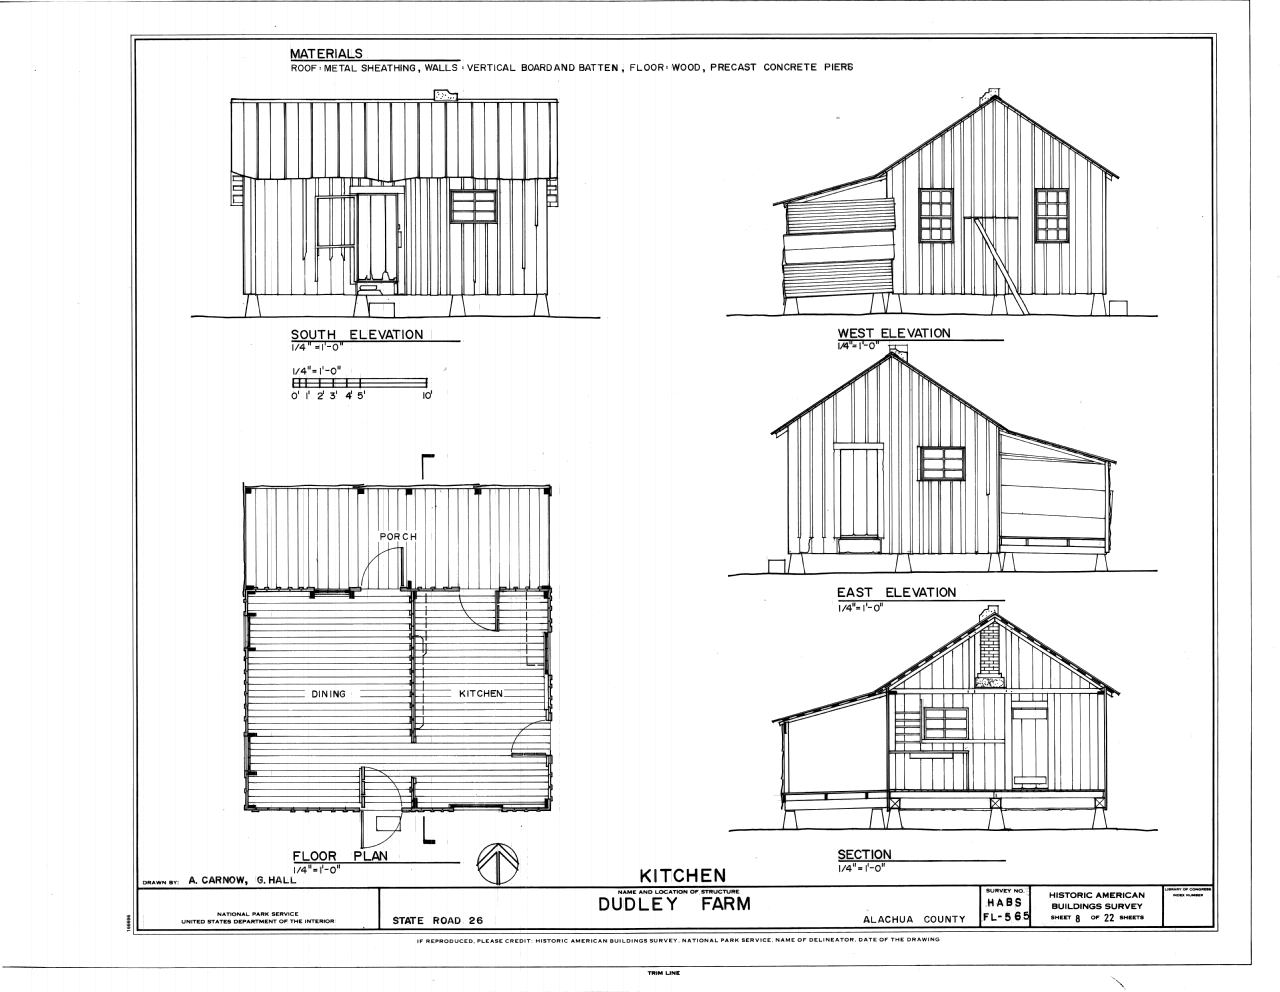 Floor Level Elevation : File kitchen elevations floor plan and section dudley